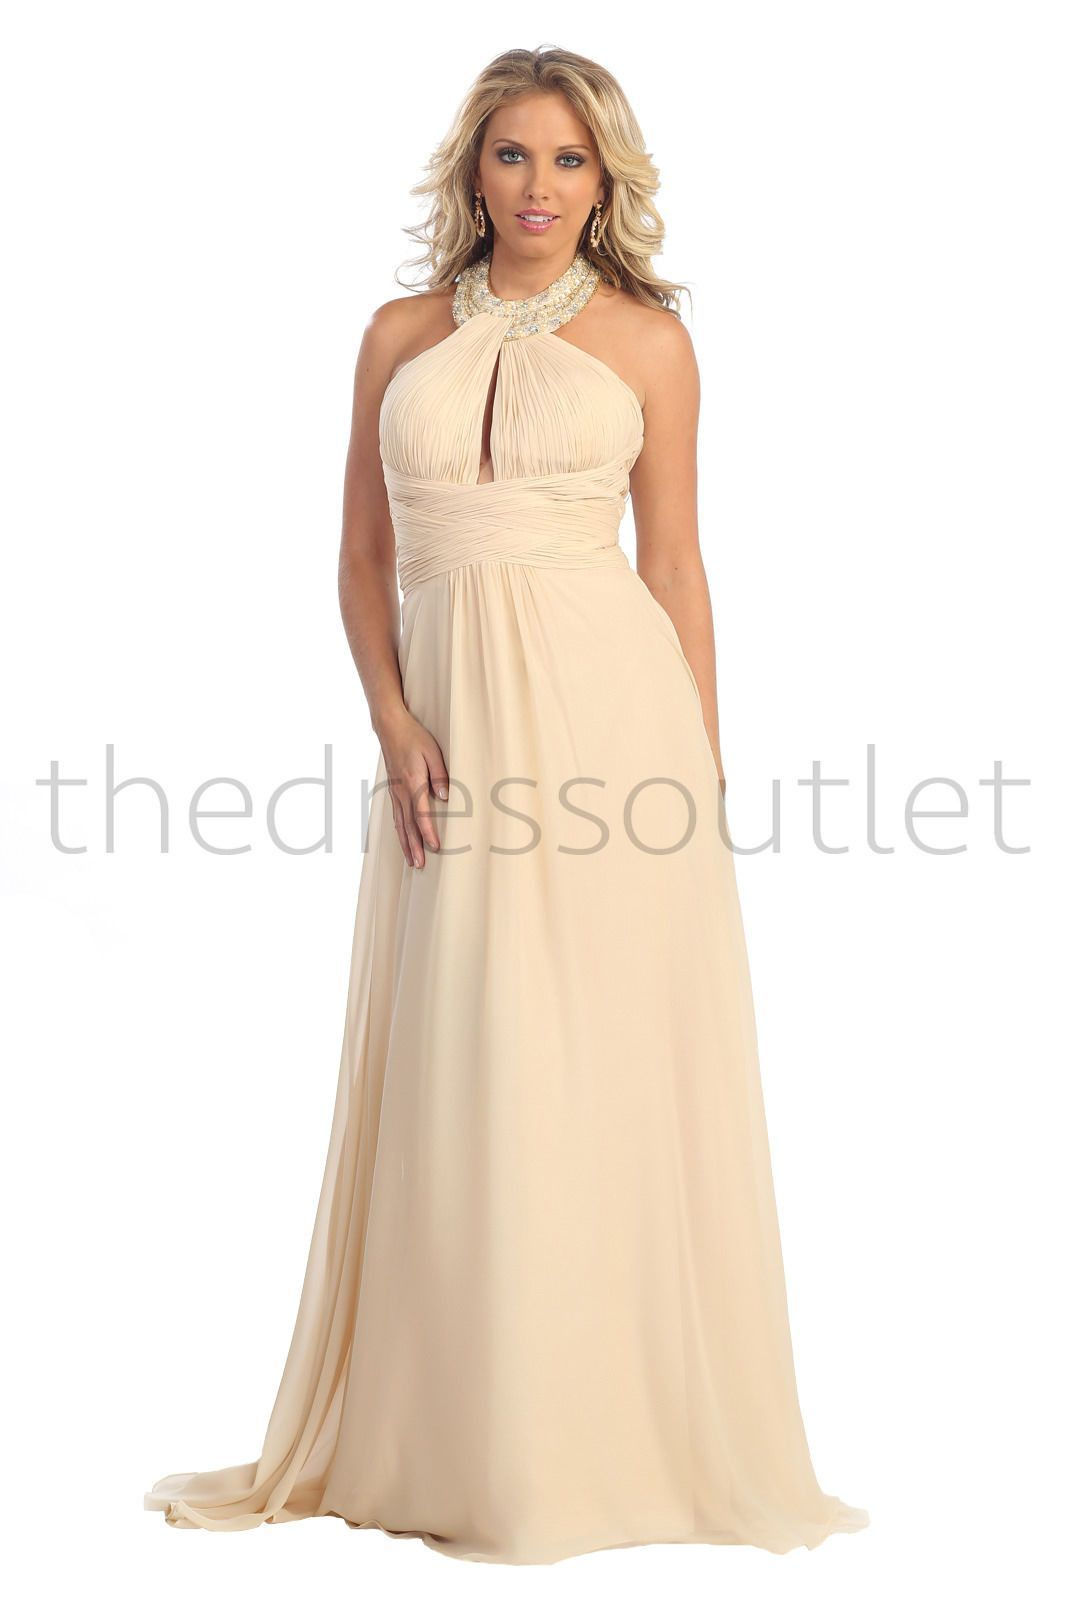 Halter top wedding dresses plus size  Halter Top Long Plus Size Evening Formal Gown Groom  Products